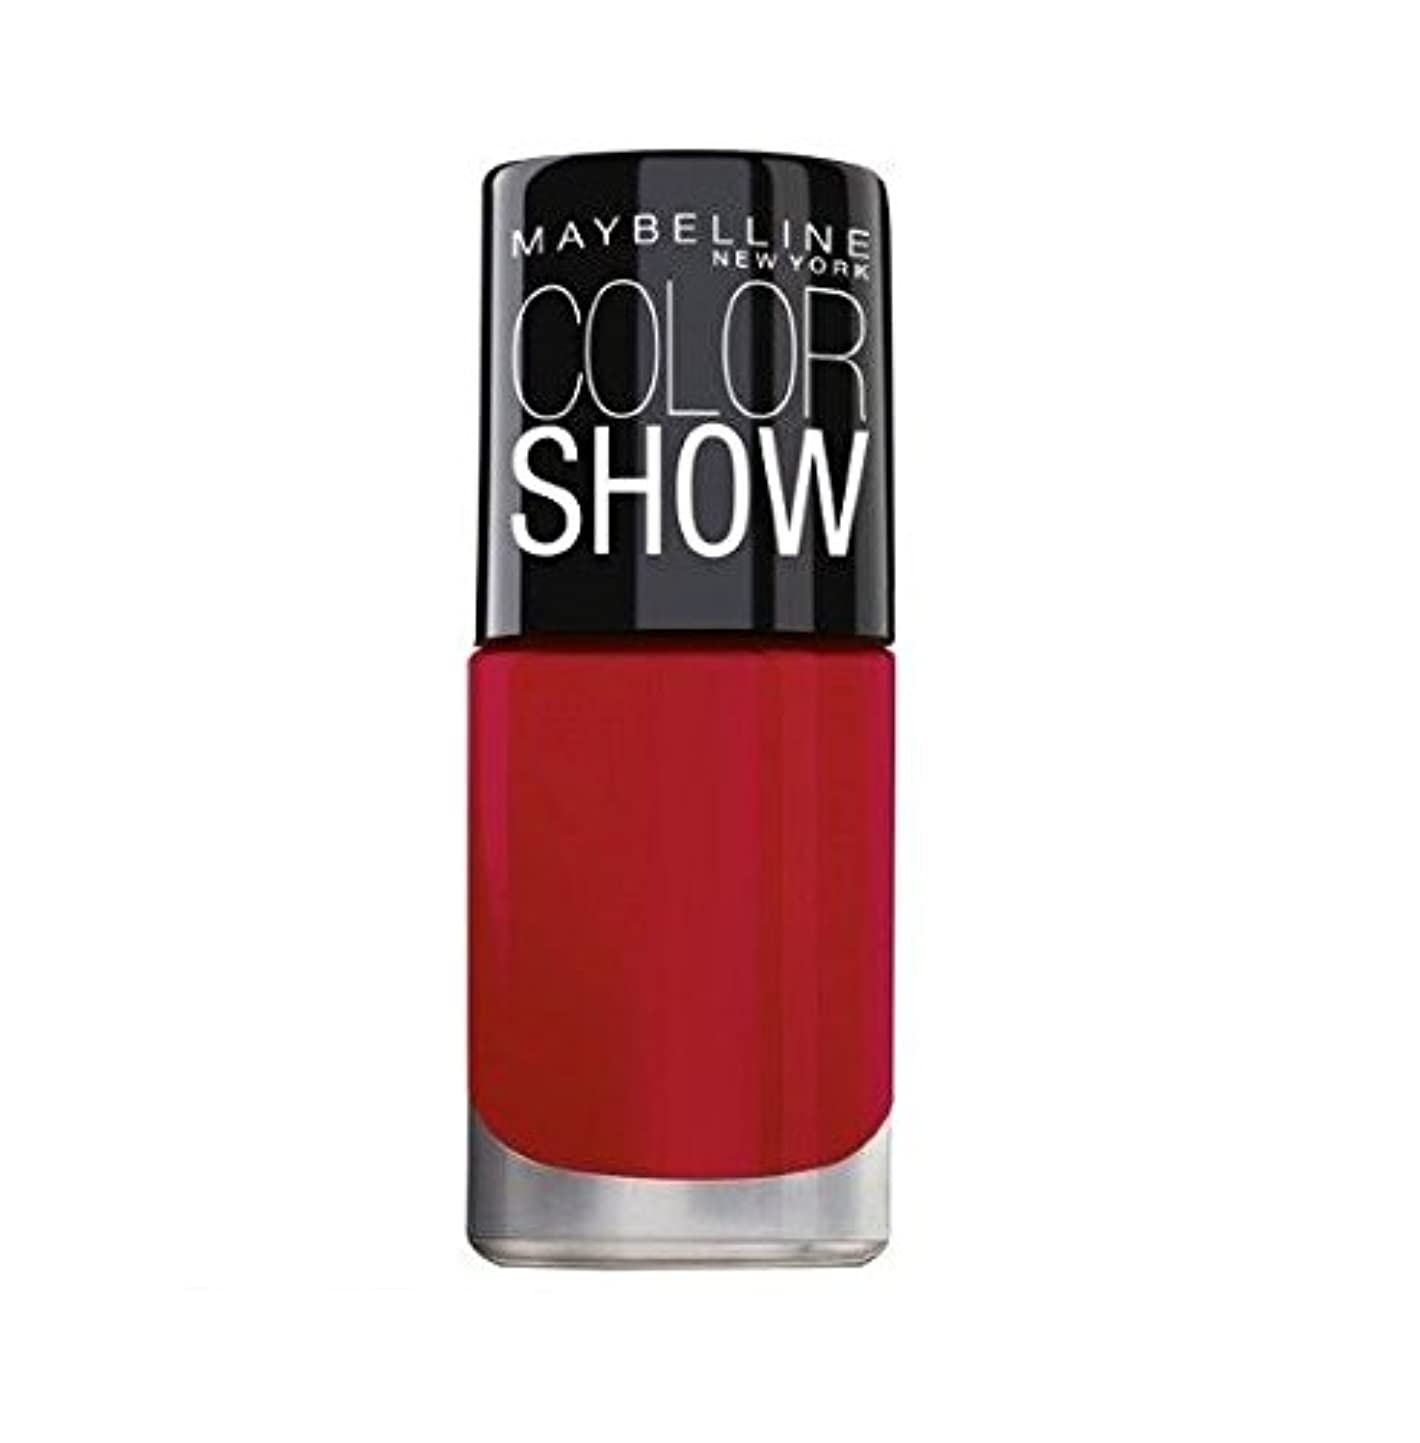 変位堤防出身地Maybelline Color Show Bright Sparks, Power of Red 708, 6ml